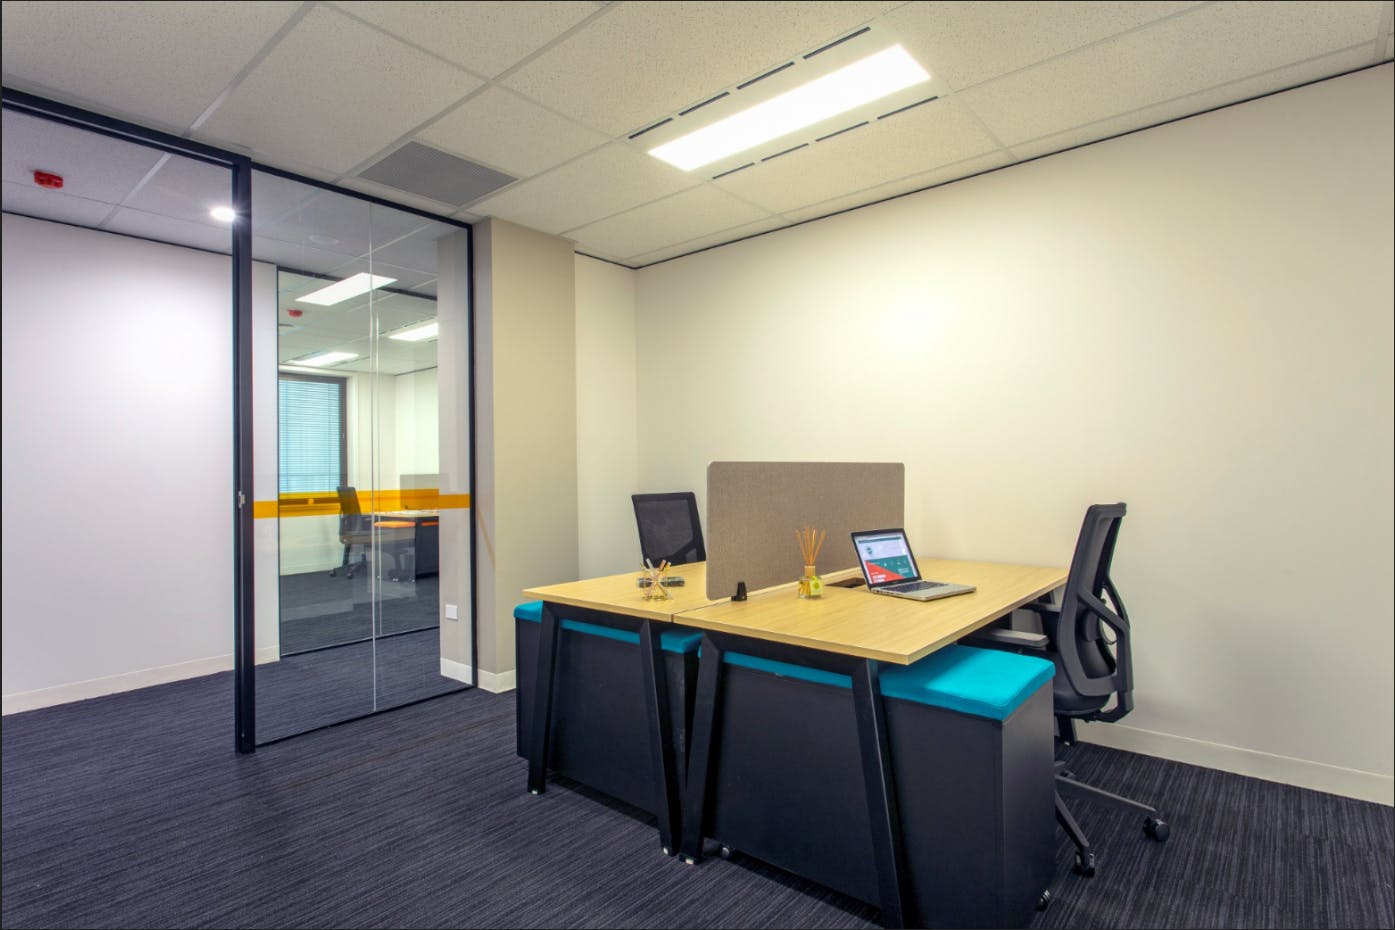 Suite 11, serviced office at Spot Co-Working, image 1